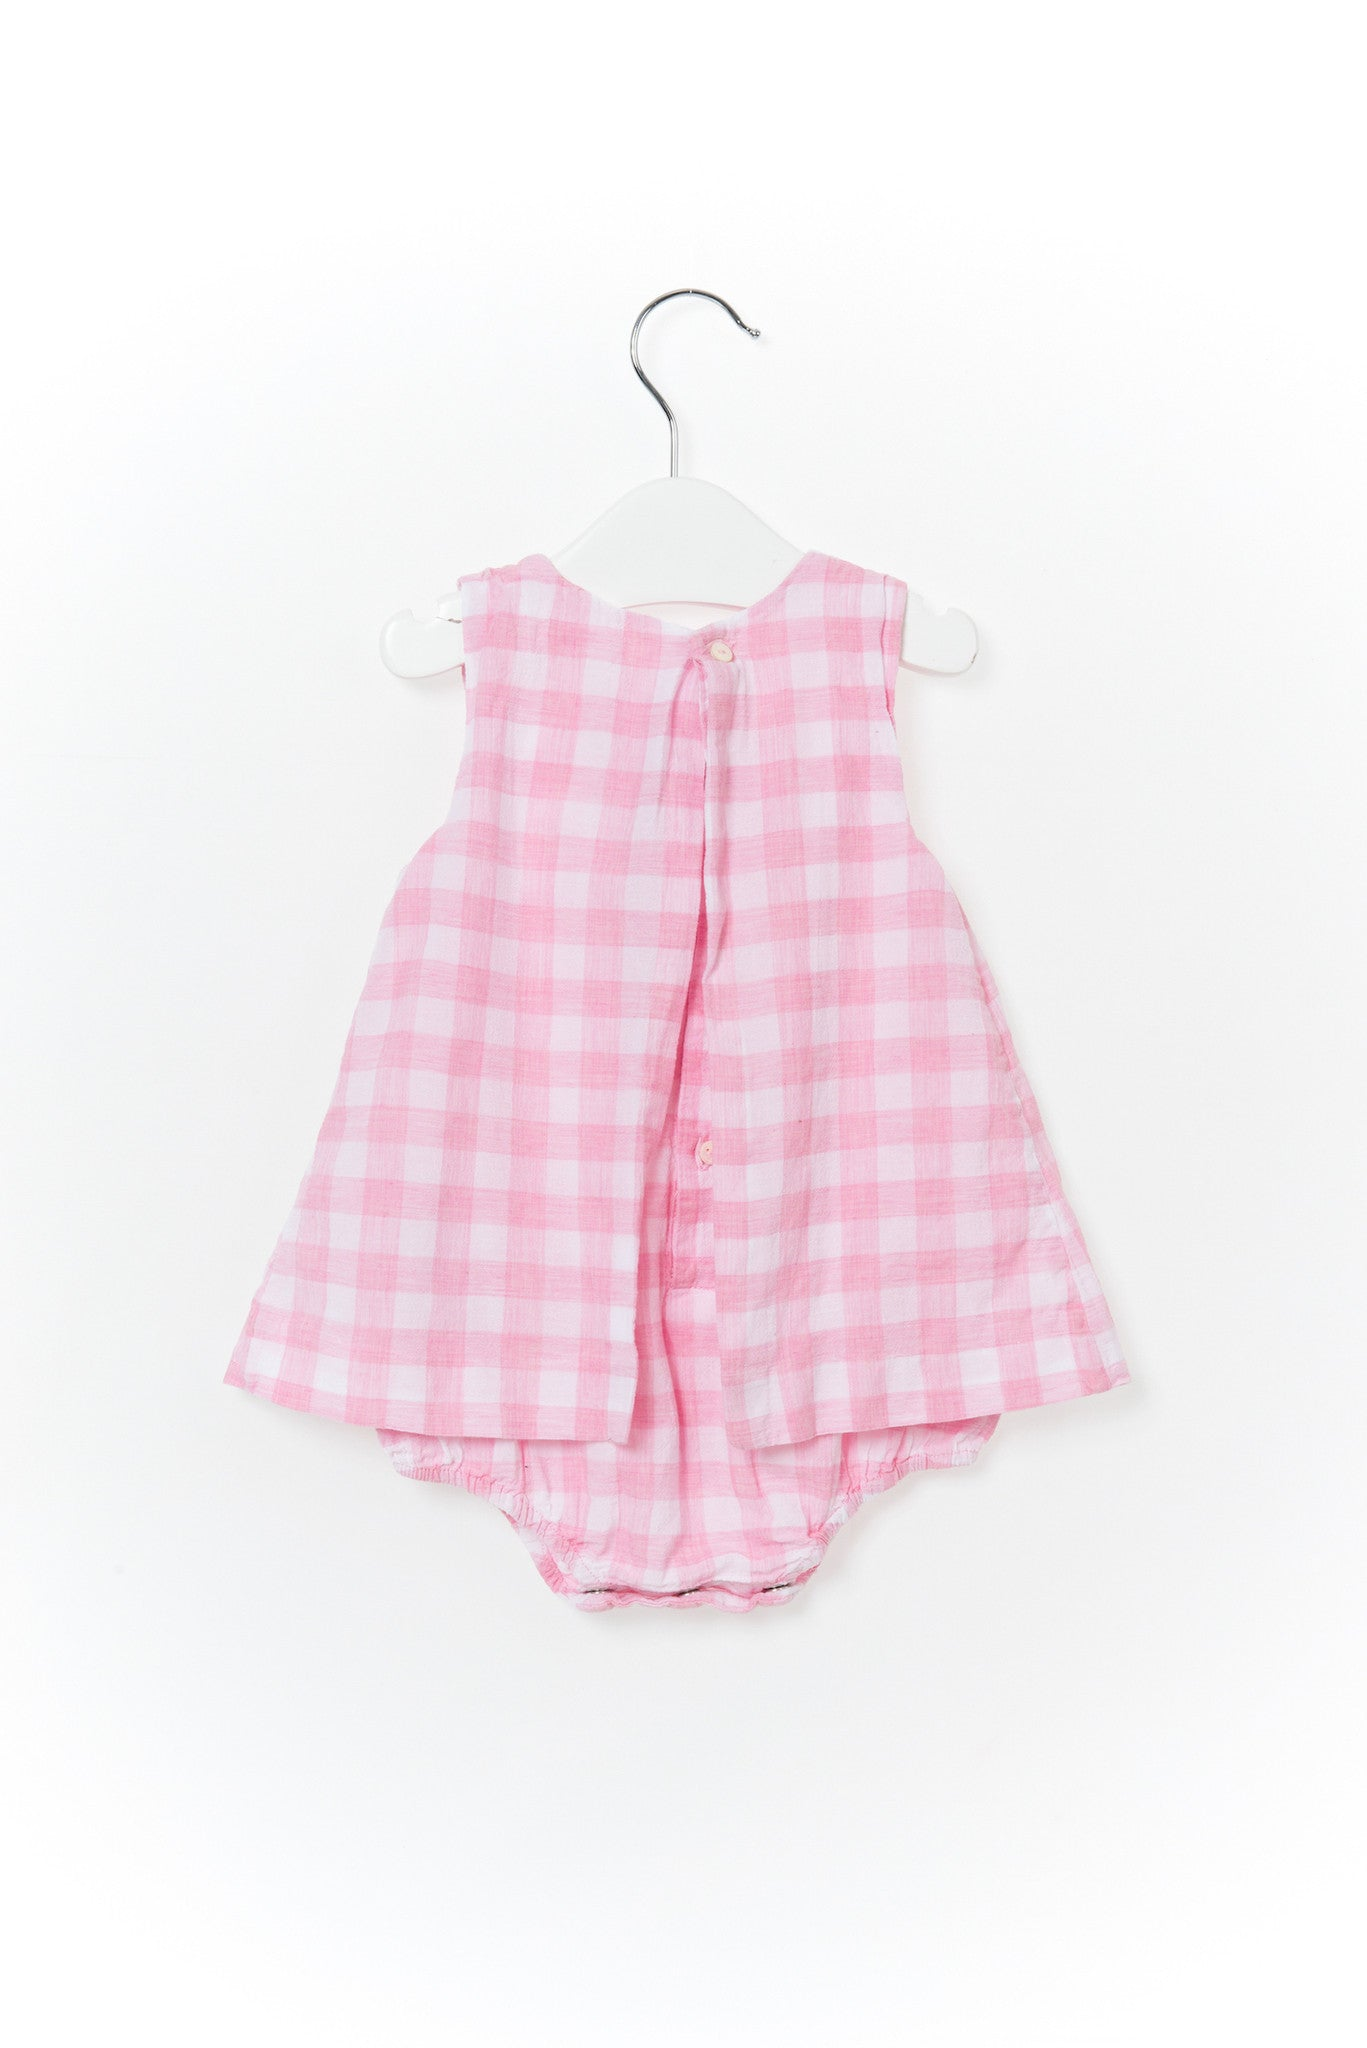 10001336~Romper 3-6M, Jacadi at Retykle - Online Baby & Kids Clothing Up to 90% Off